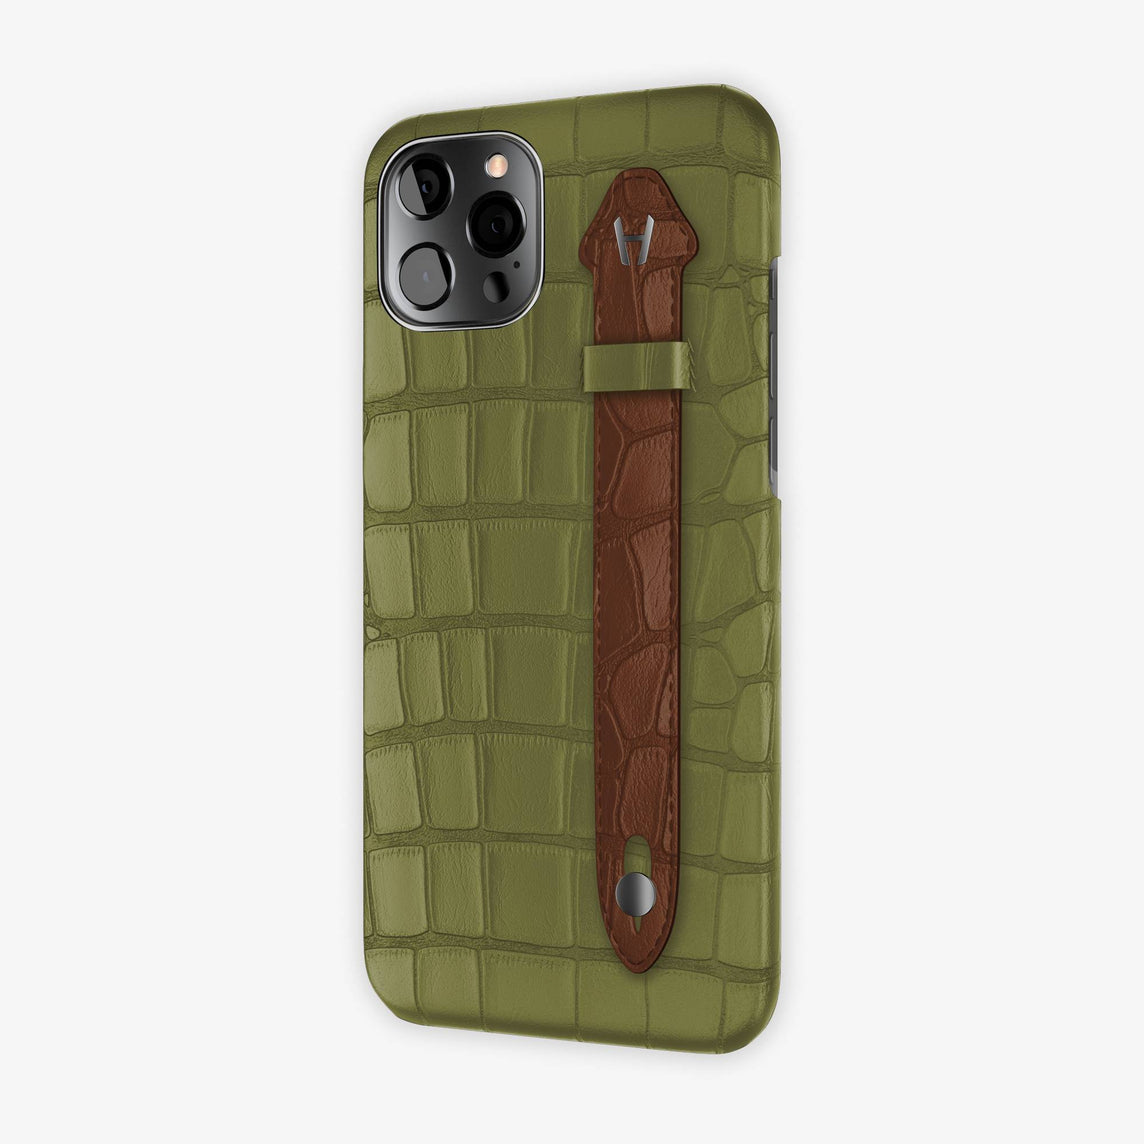 Alligator Side Finger Case iPhone 12 Pro Max | Khaki/Brown - Black